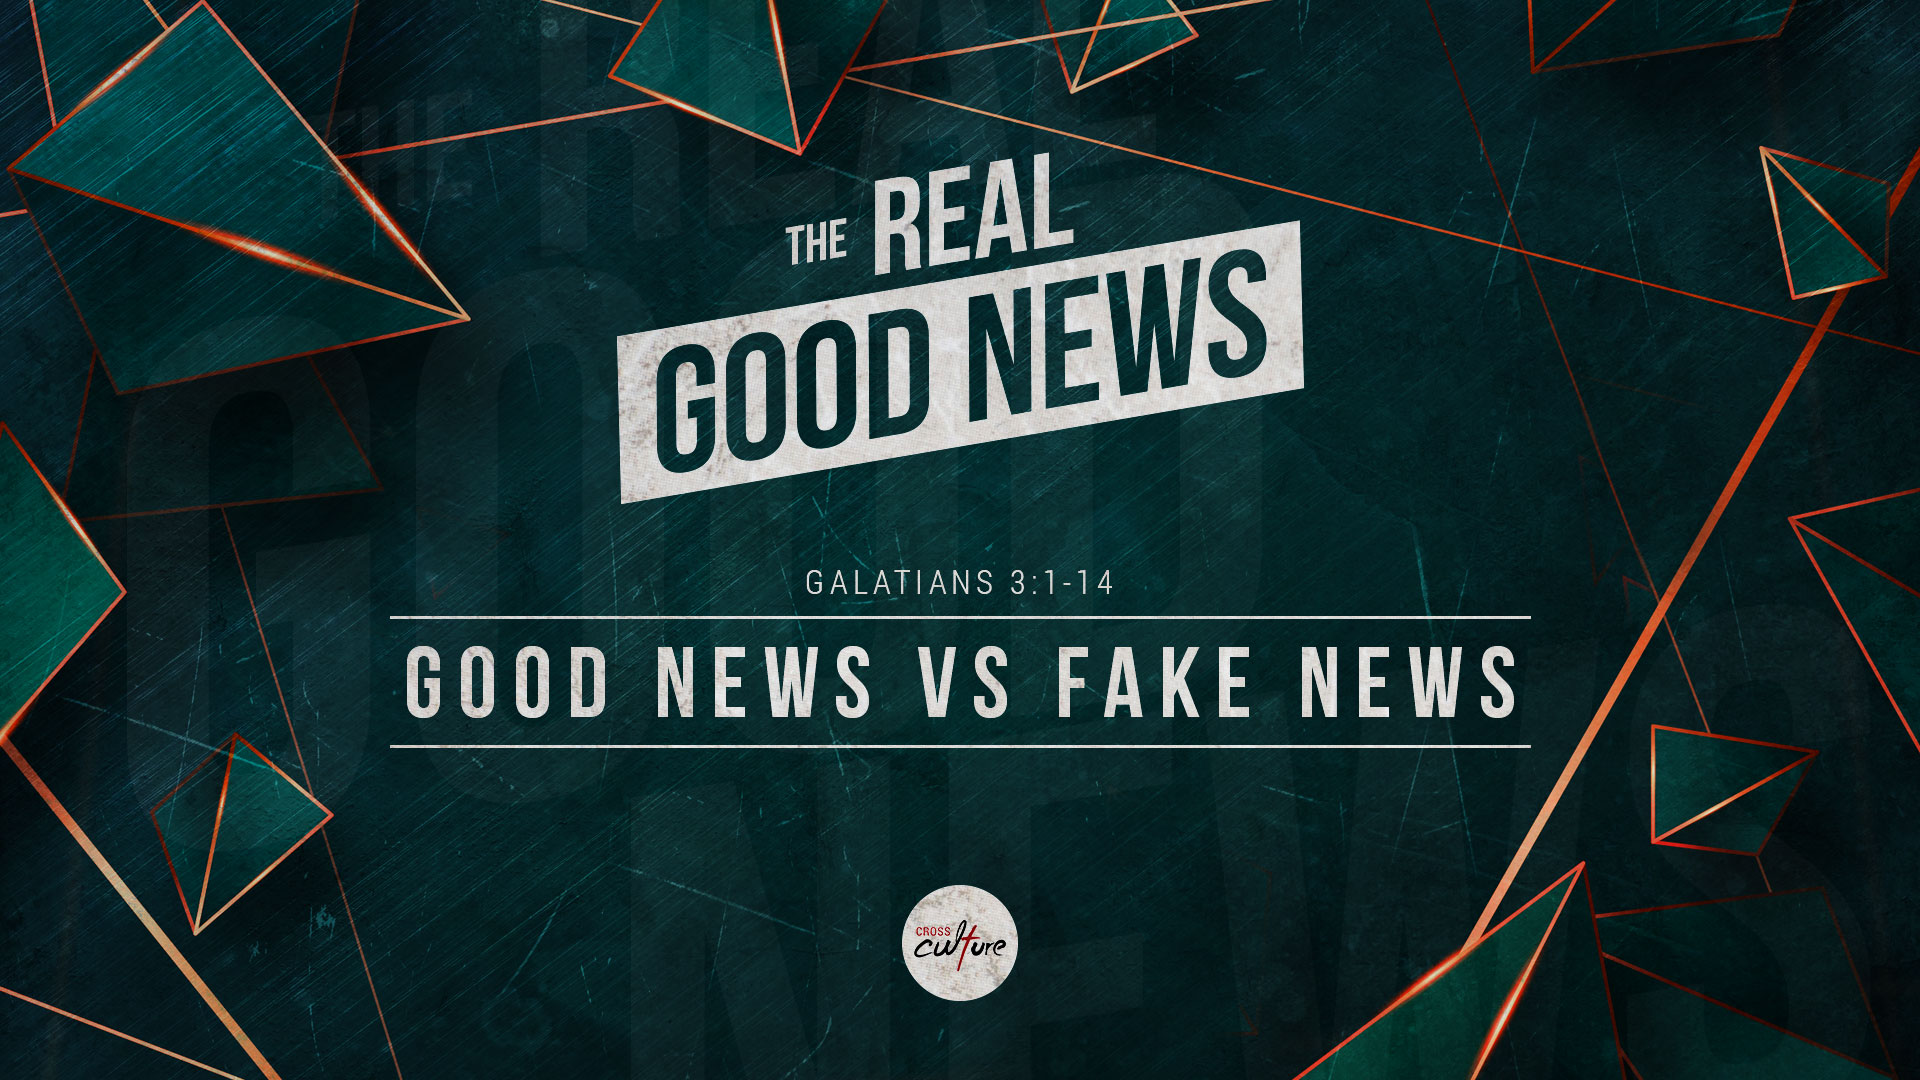 Good News vs Fake News